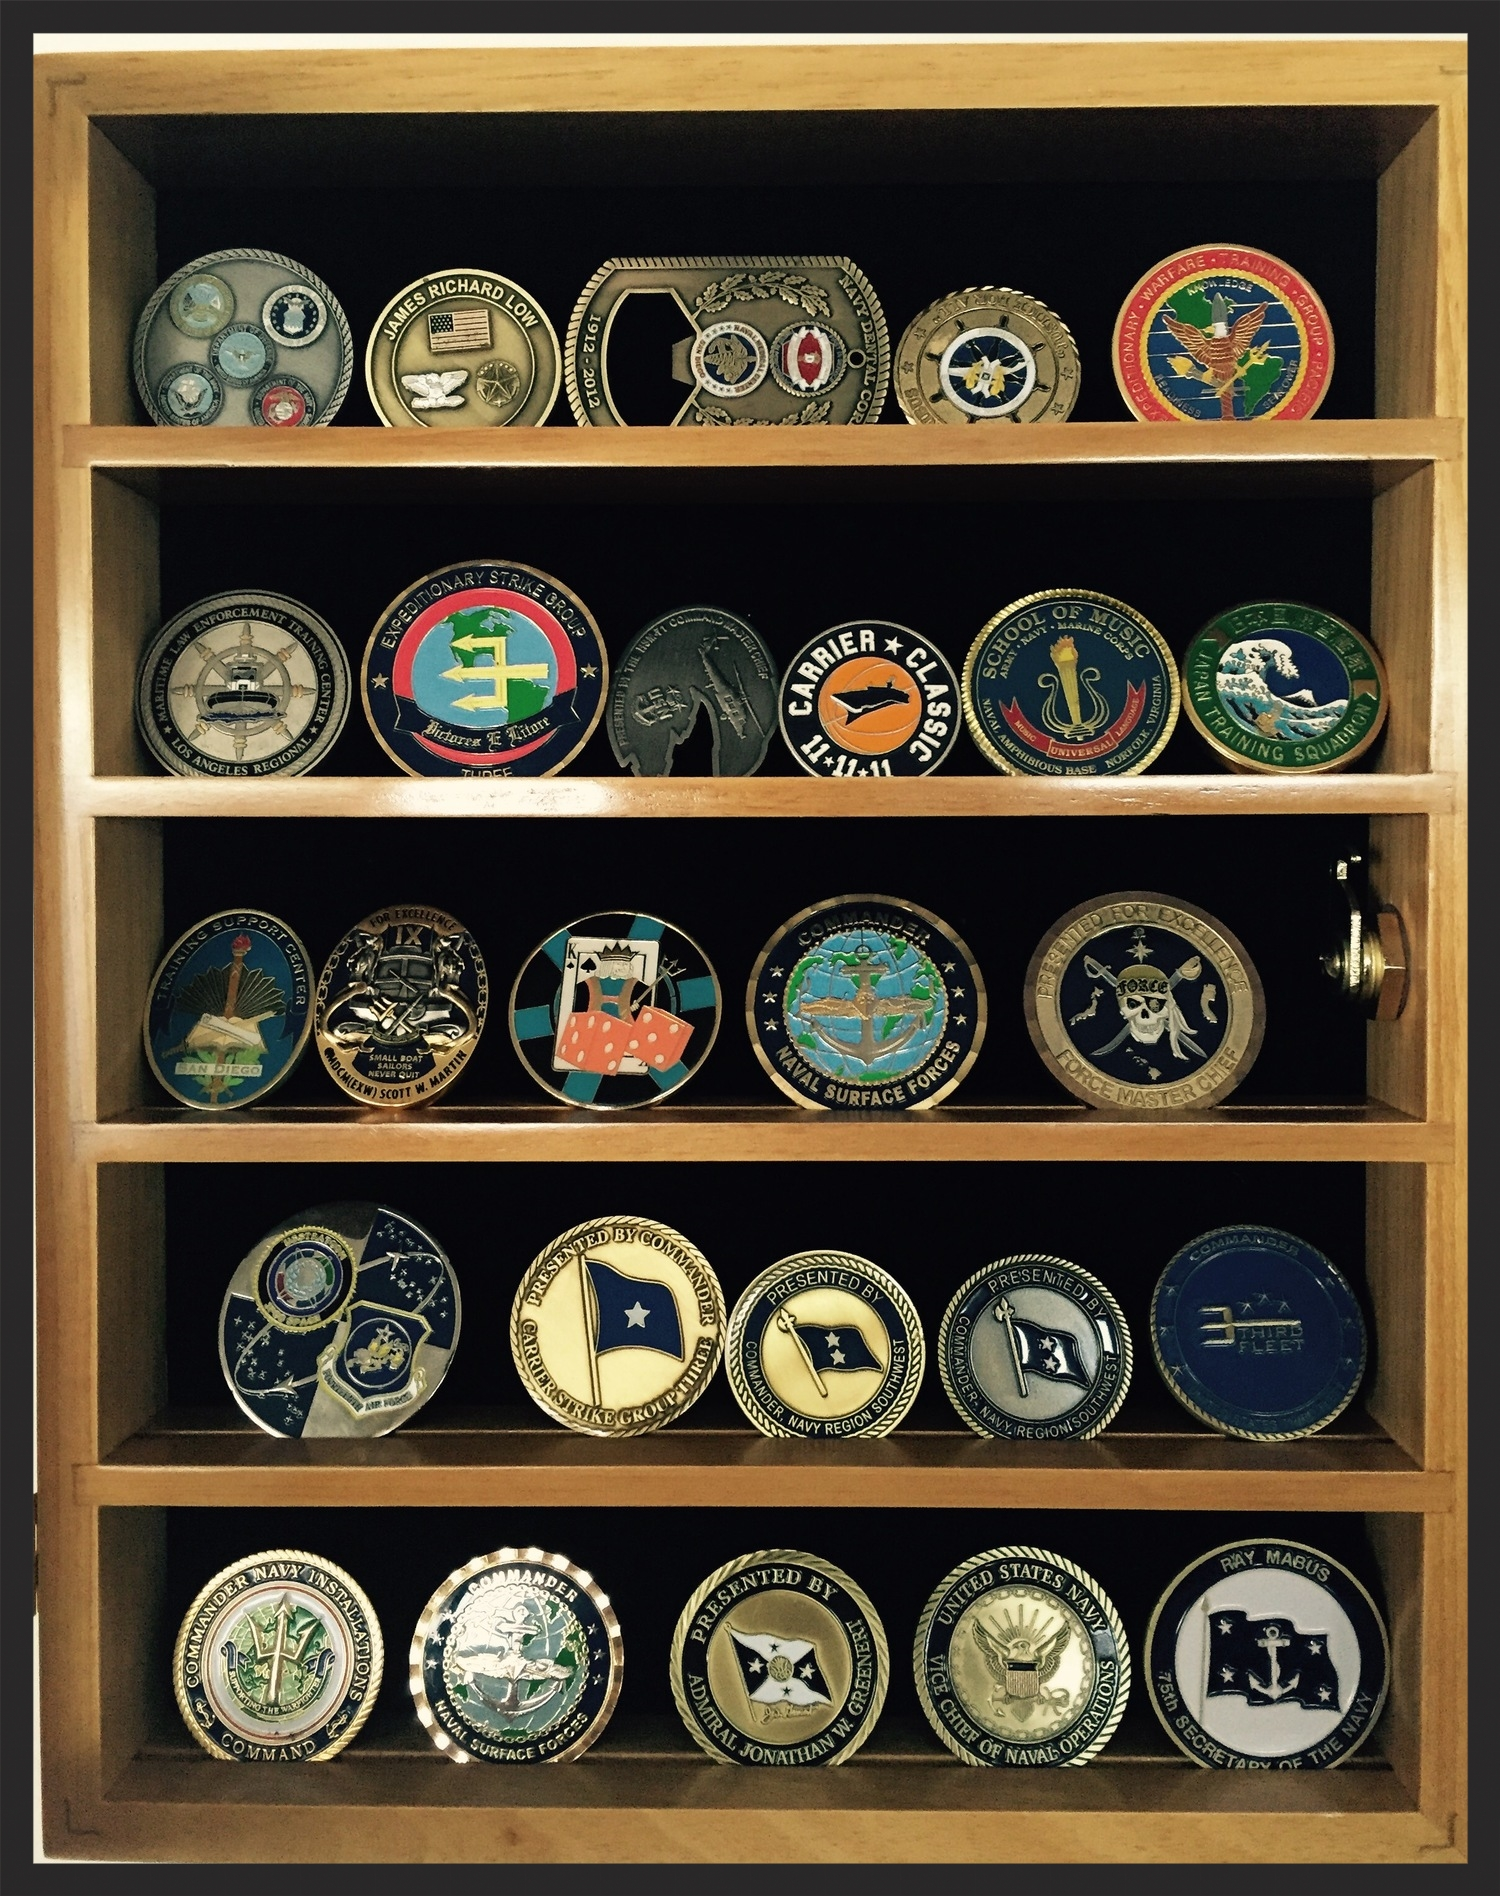 The Military Challenge Coin: a Tradition of Honor